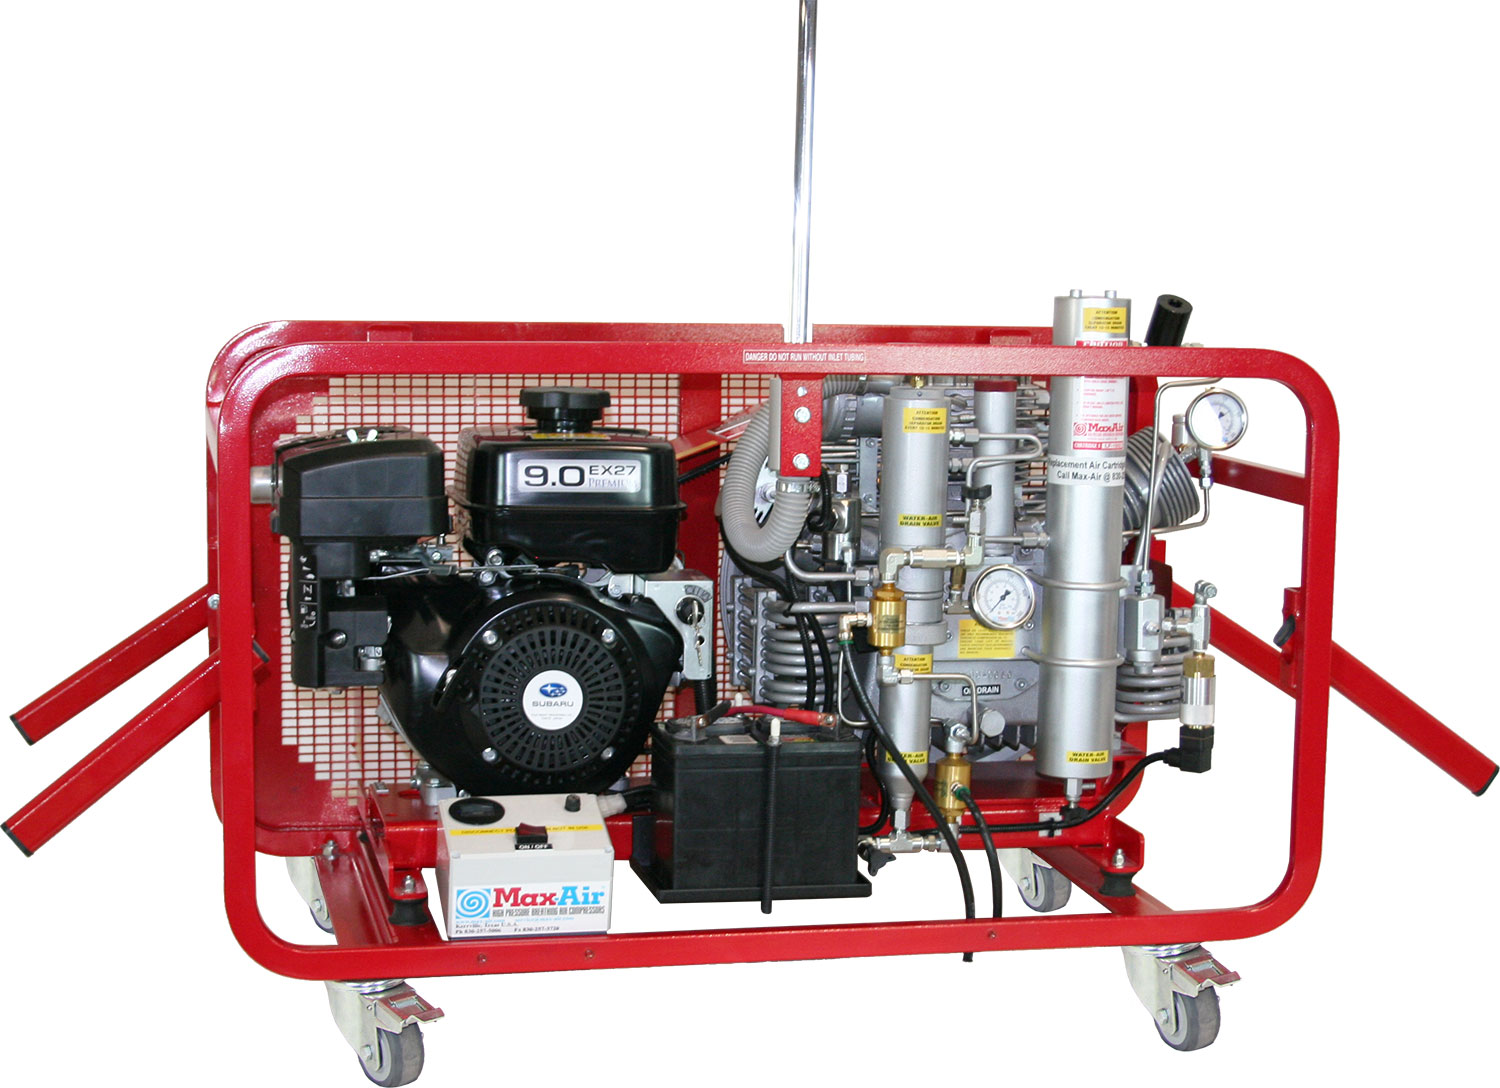 Max-Air 90 GS Subaru Gas Mini-PBAC Air Compressor (shown with optional 12 volt system)